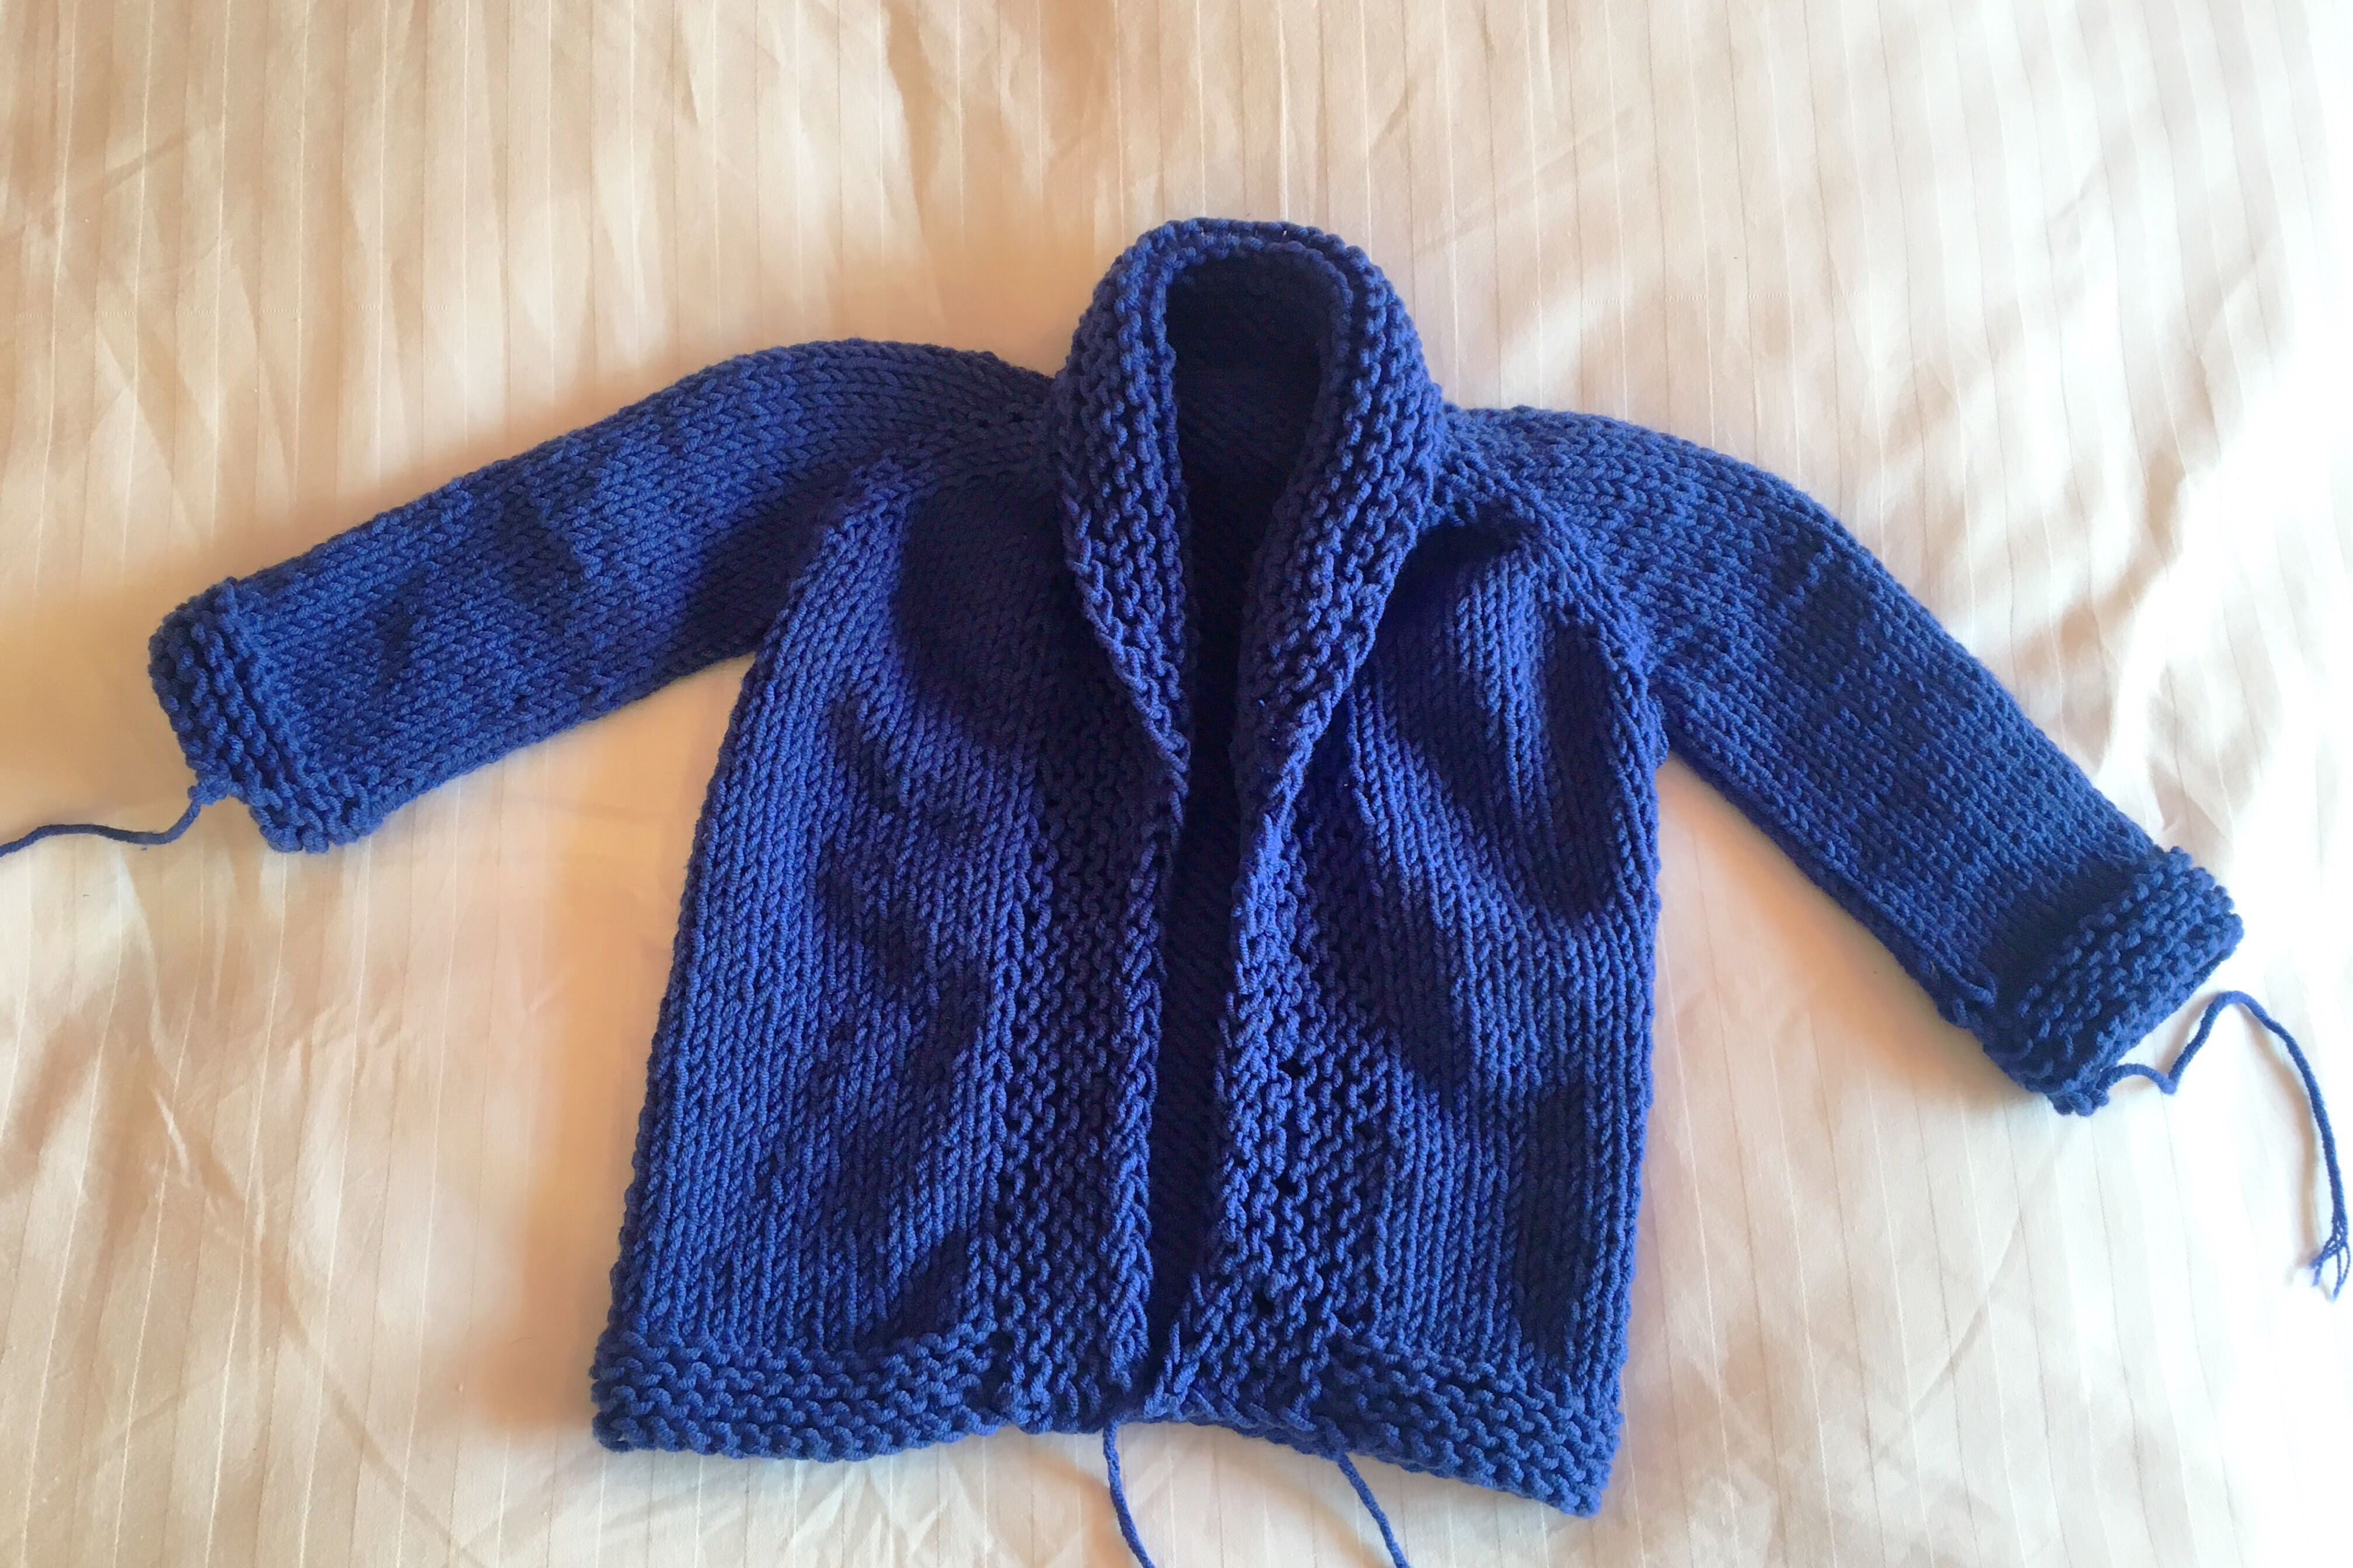 B is for baby sweater knitsbywhit this pattern is quite easy to follow and best of all instantly gratifying using size us 8 needles and worsted weight yarn made for a speedy knit bankloansurffo Gallery